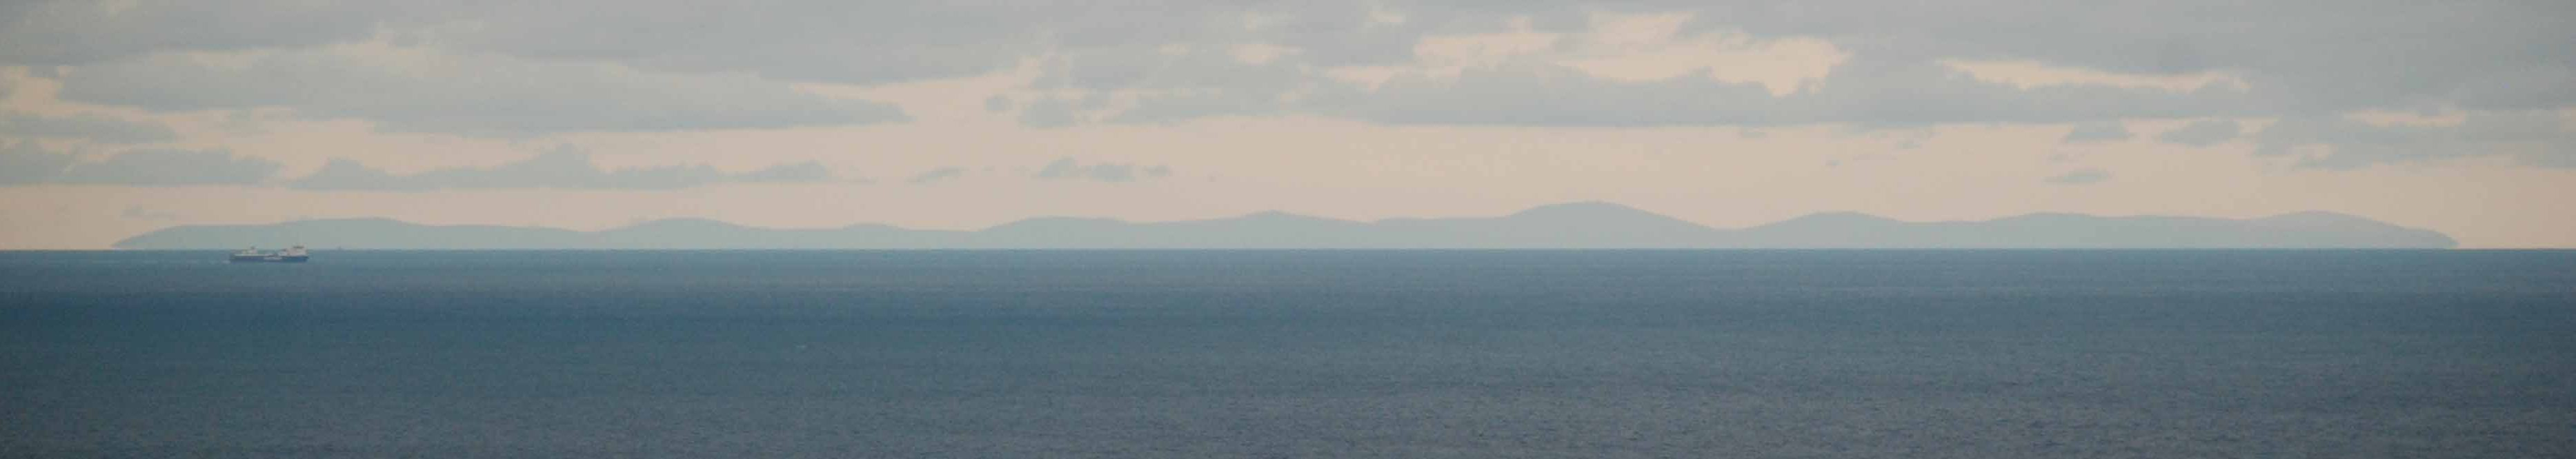 The Isle of Man clearly visible on the horizon.